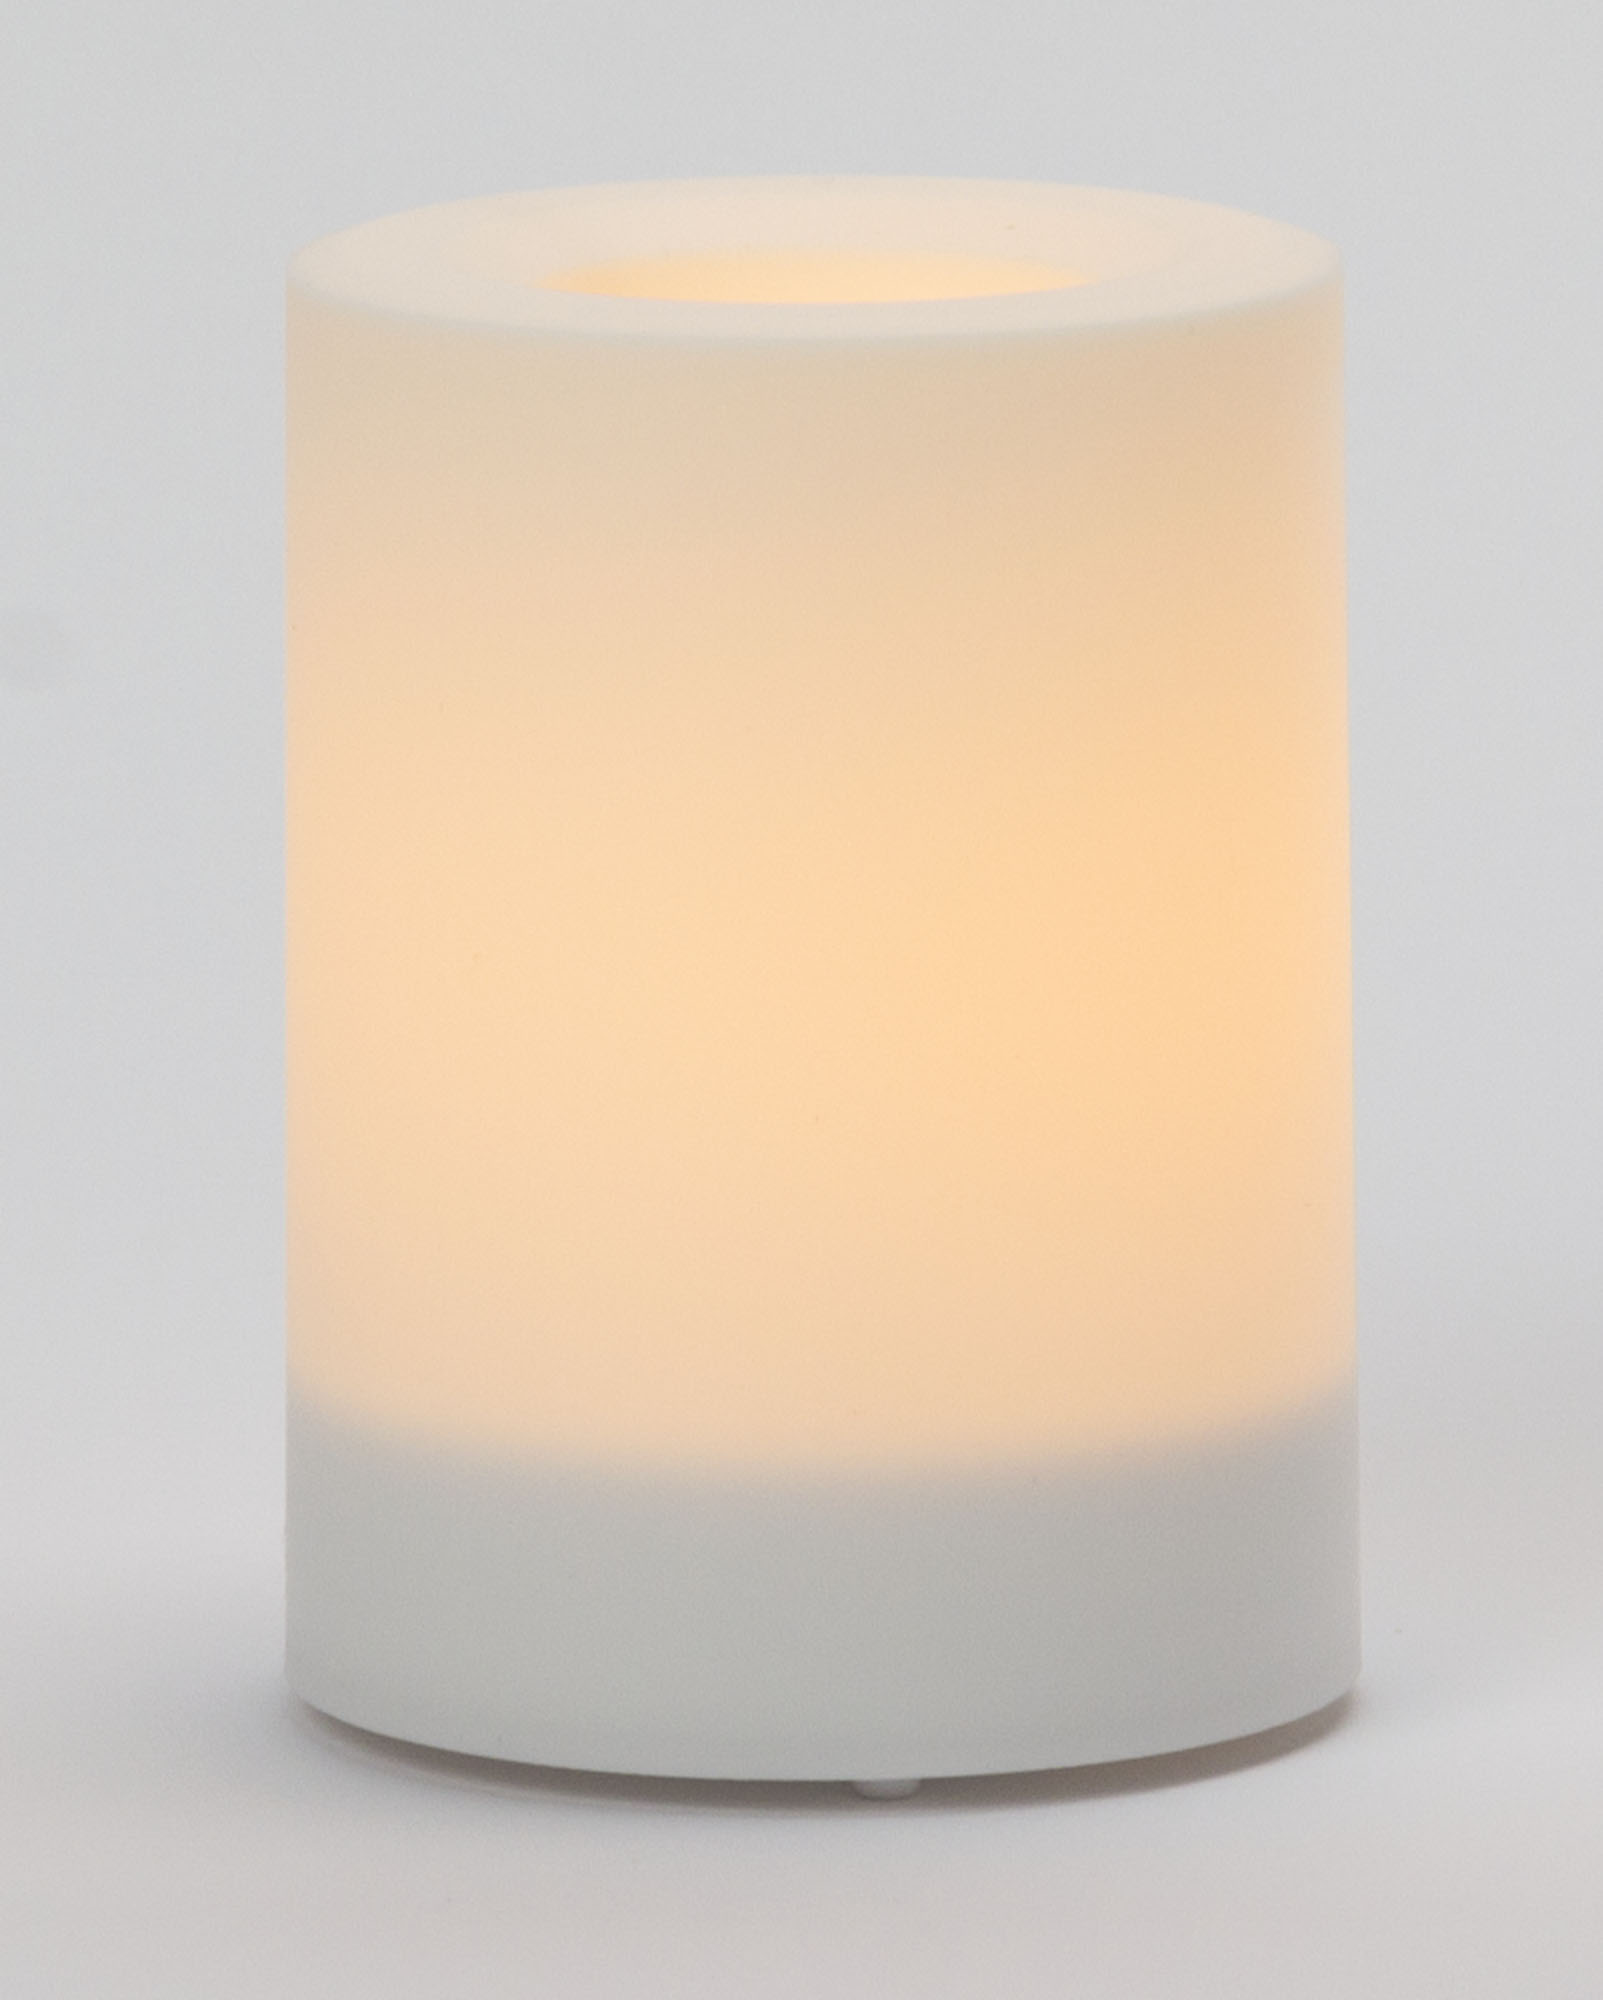 4x3 Inch Flameless Outdoor Pillar Candle with Timer - White